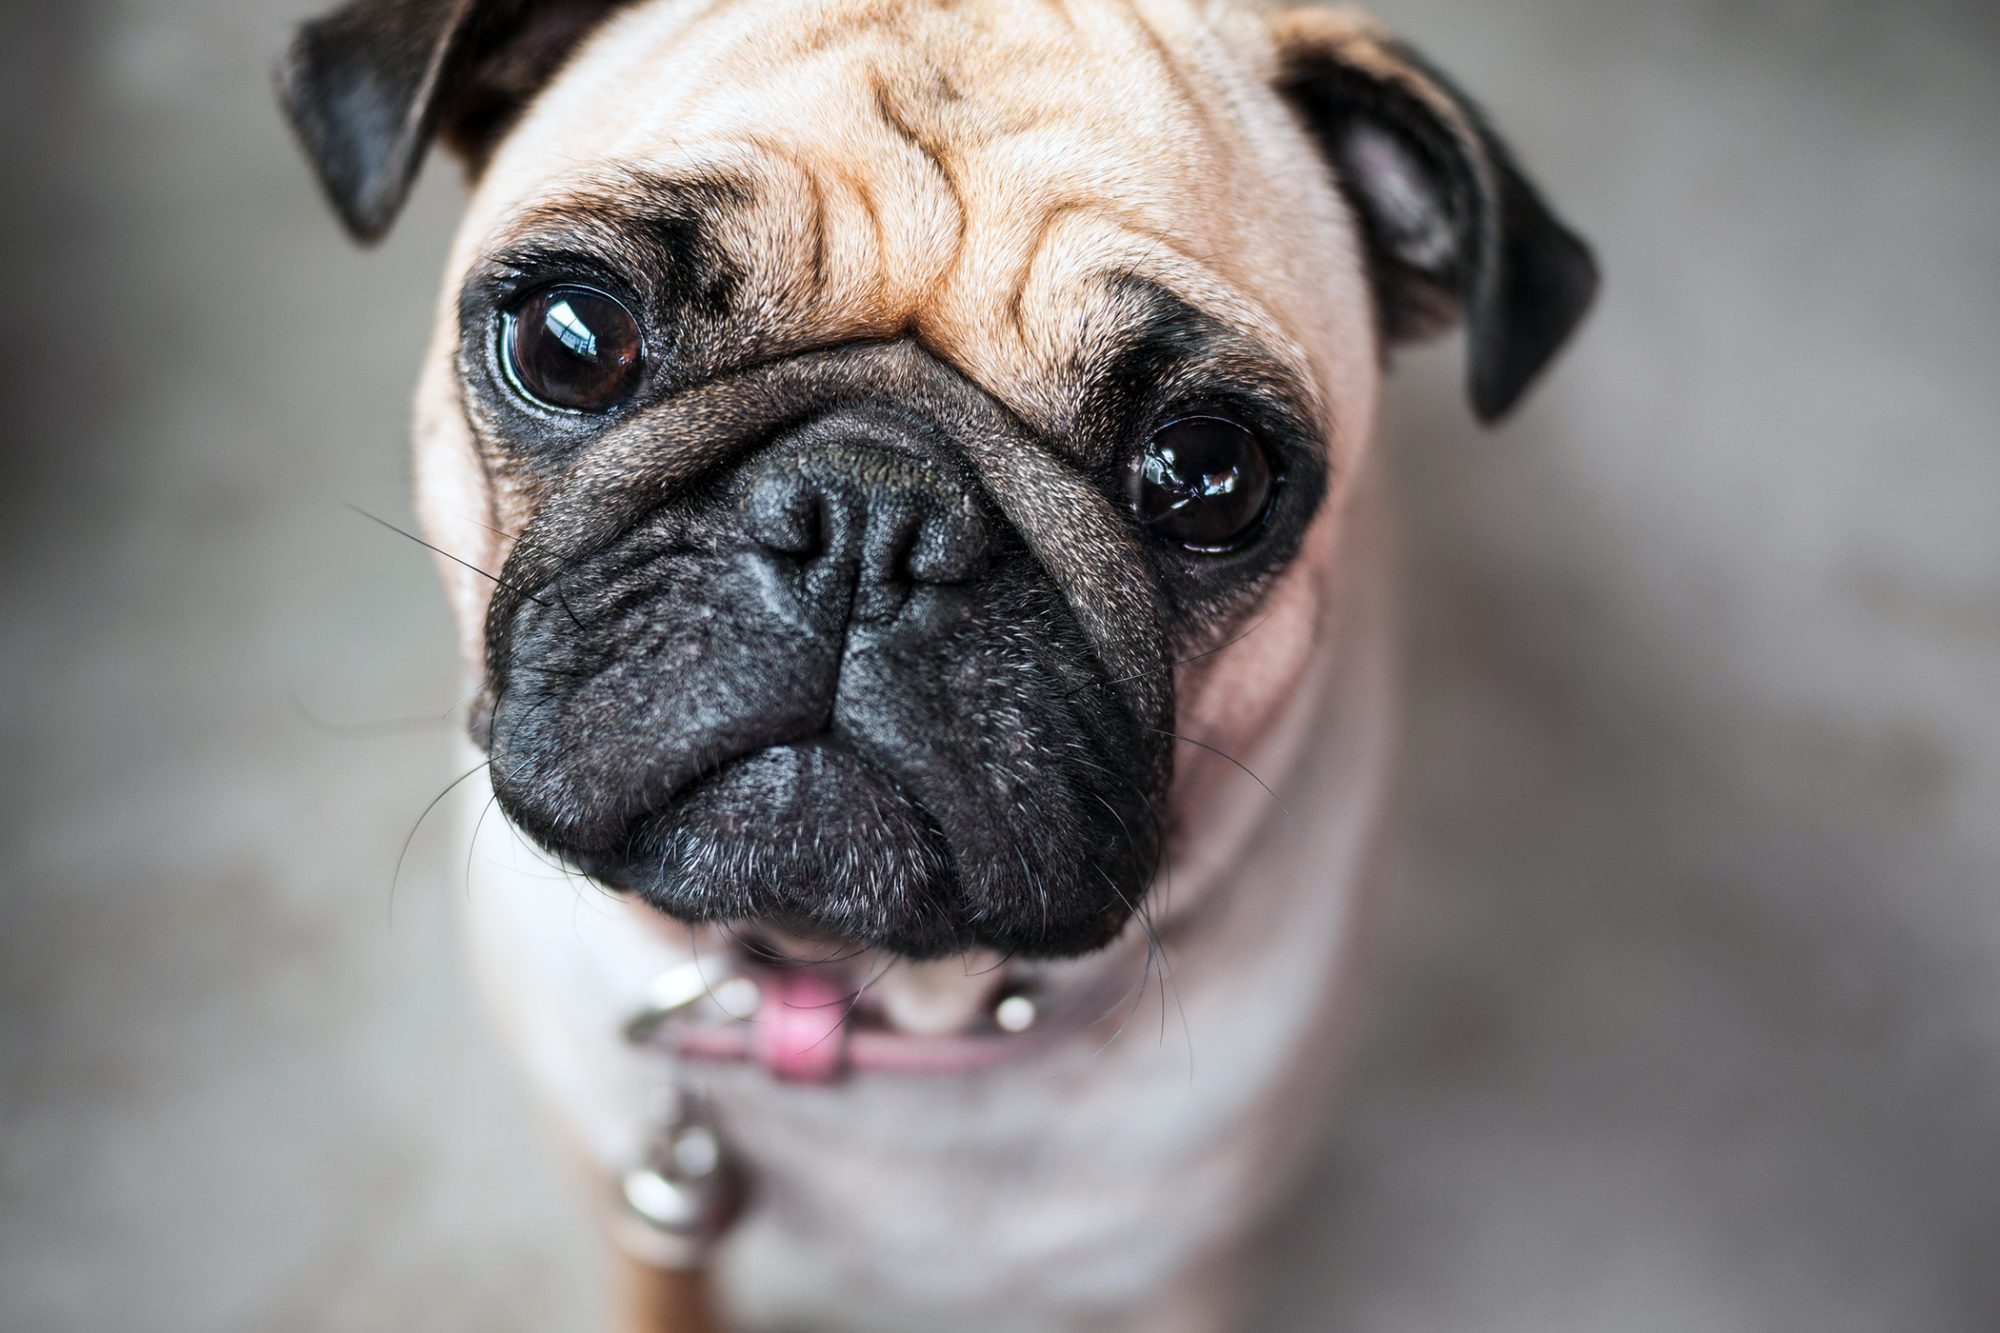 pug looking up at camera